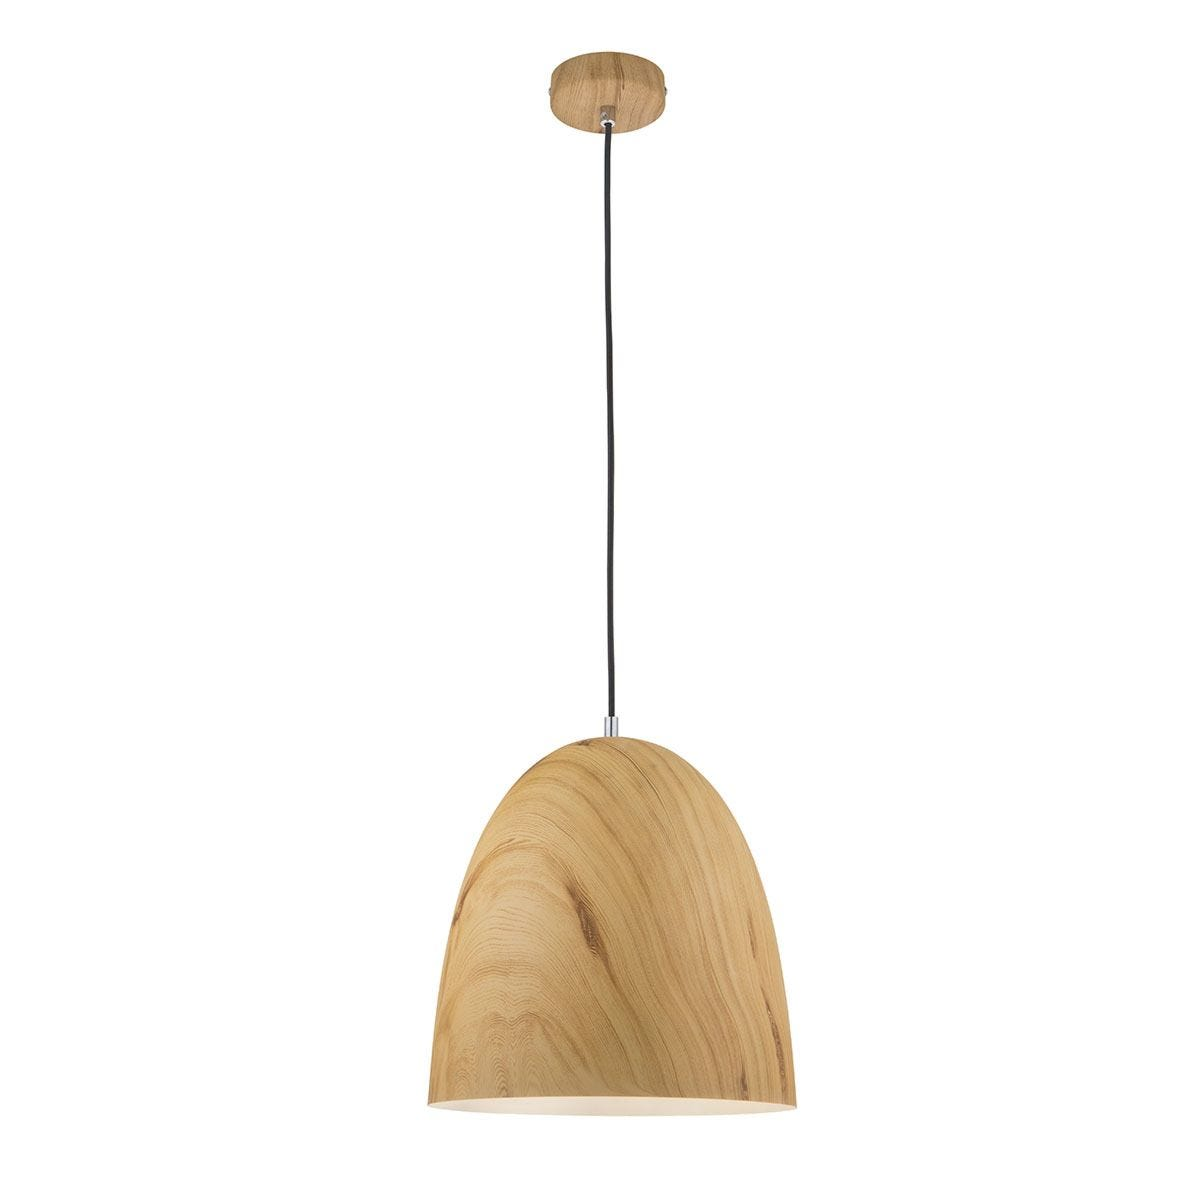 Wofi Liam 31cm Diameter Pendant Ceiling Light - Wood Effect